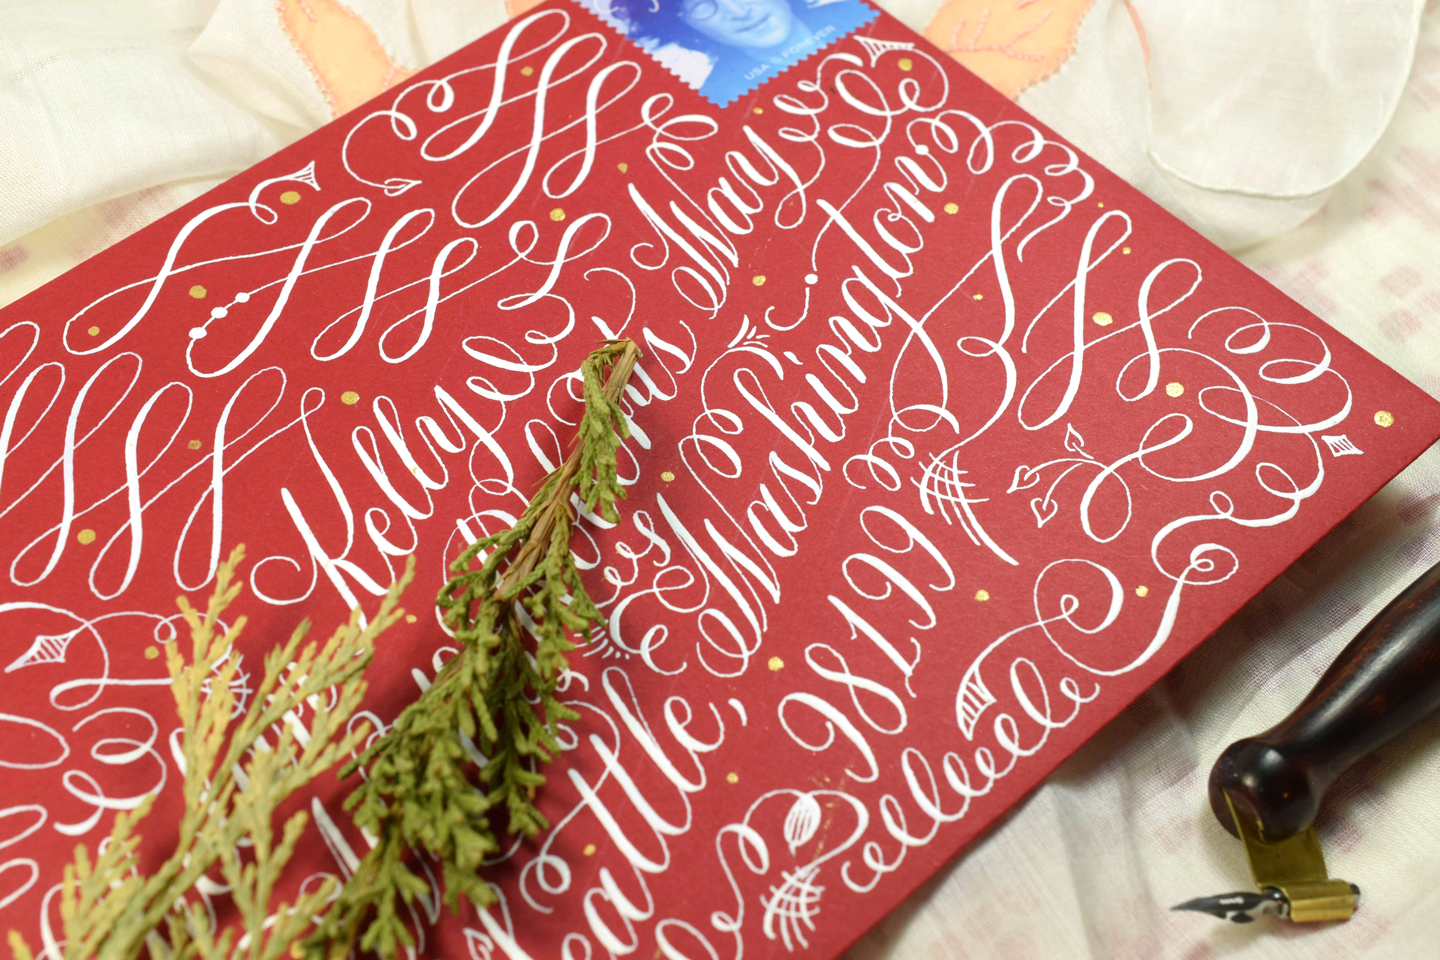 Among other things, TPK's Intermediate Calligraphy Course will teach you how to make flourishes with an organic flow!